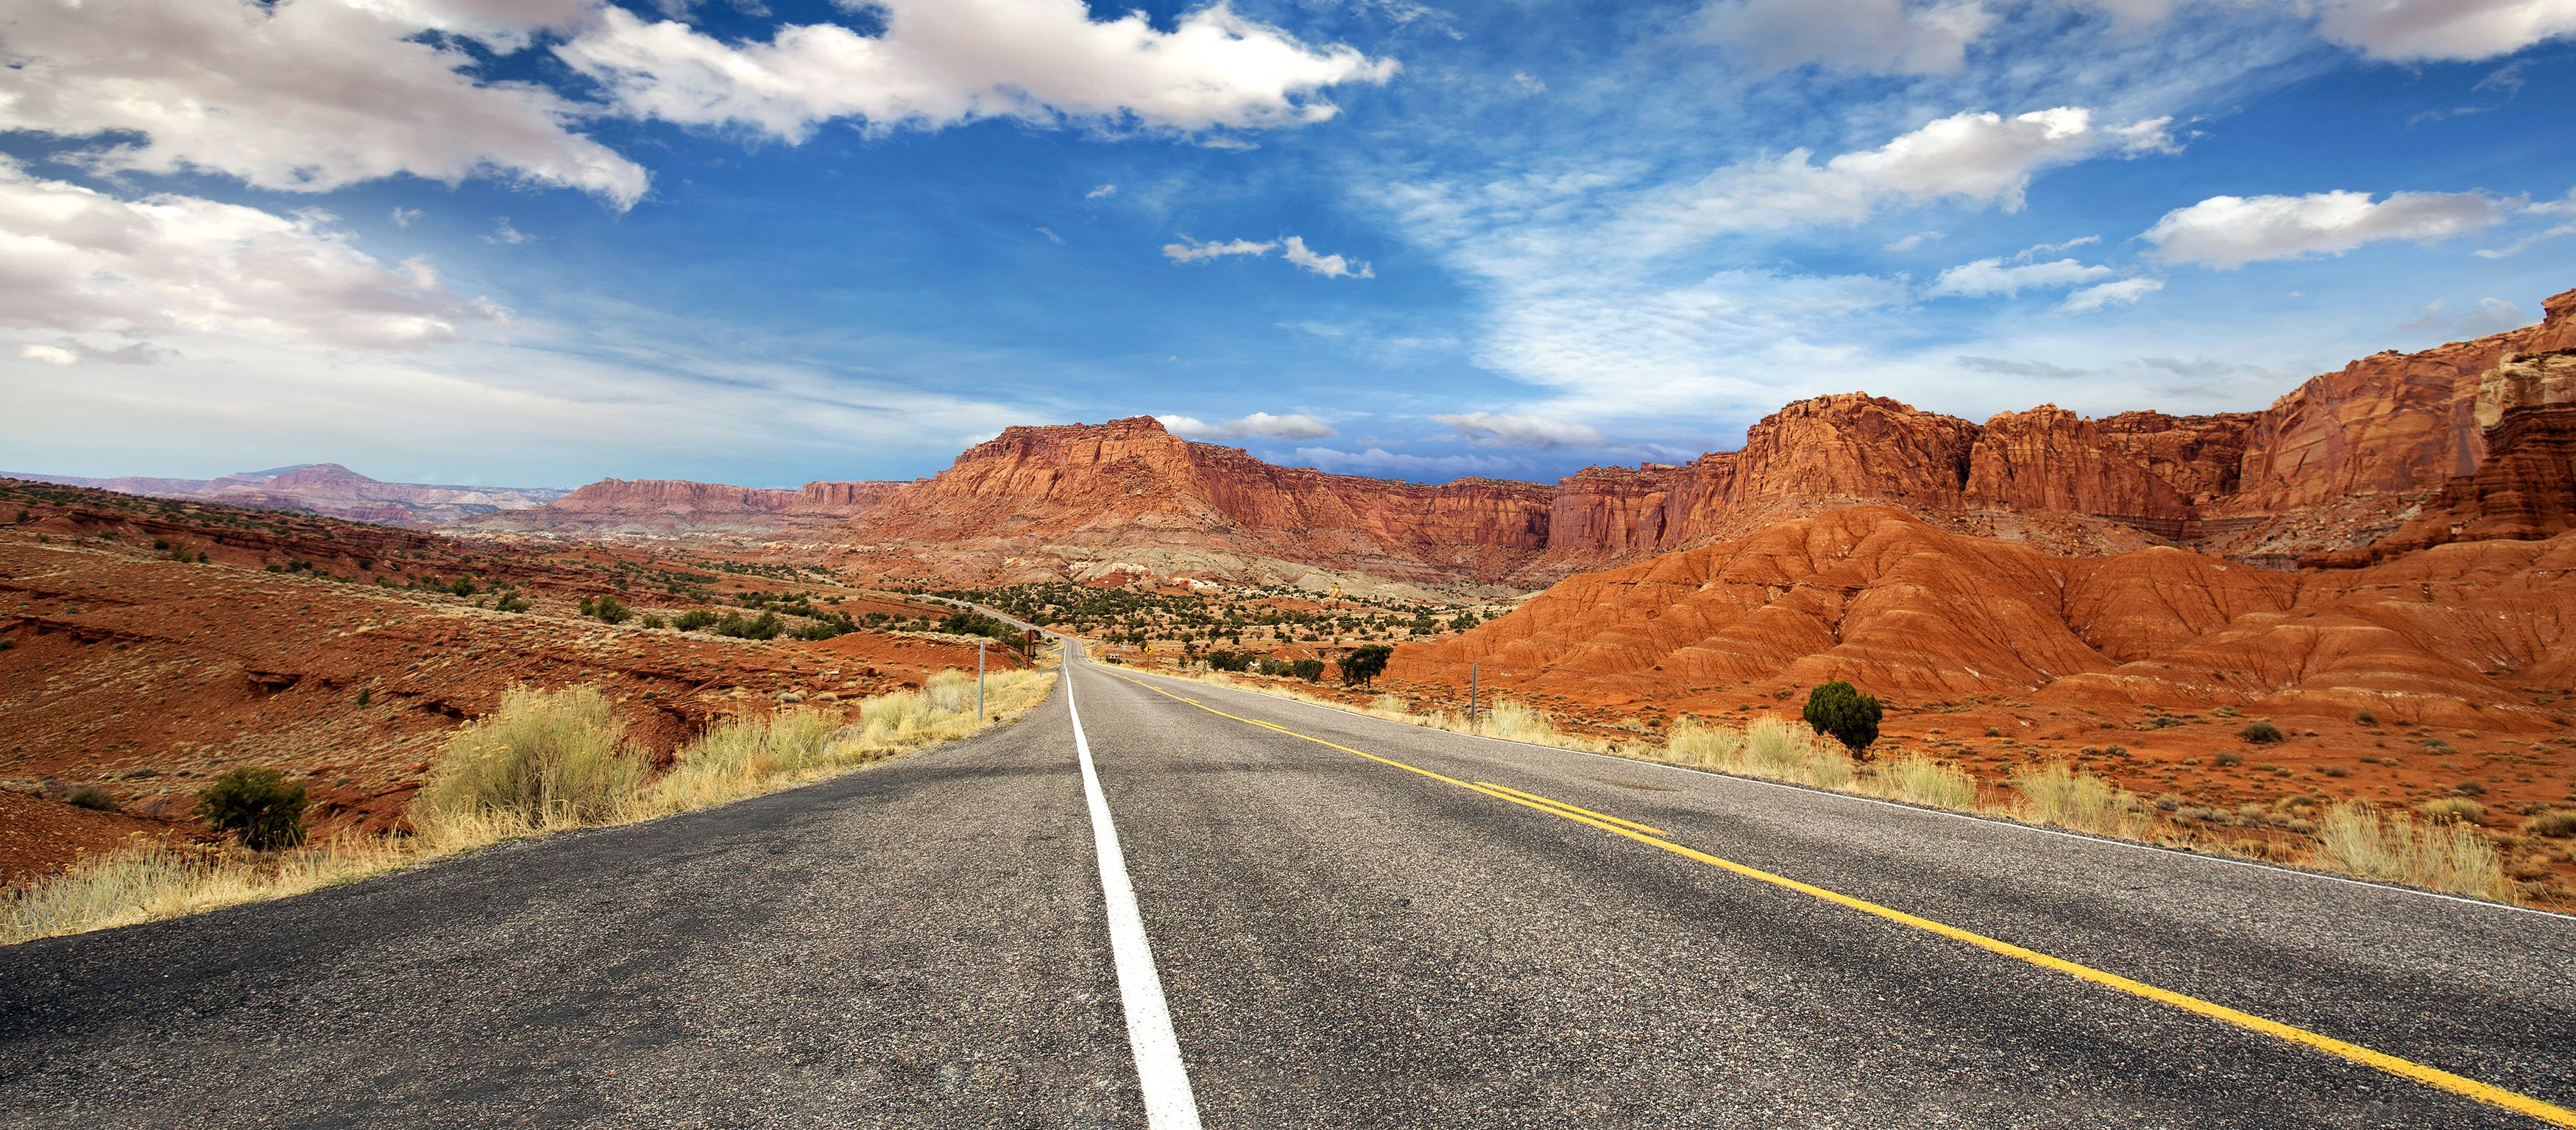 Der Highway durch den Capitol Reef Nationalpark in Utah